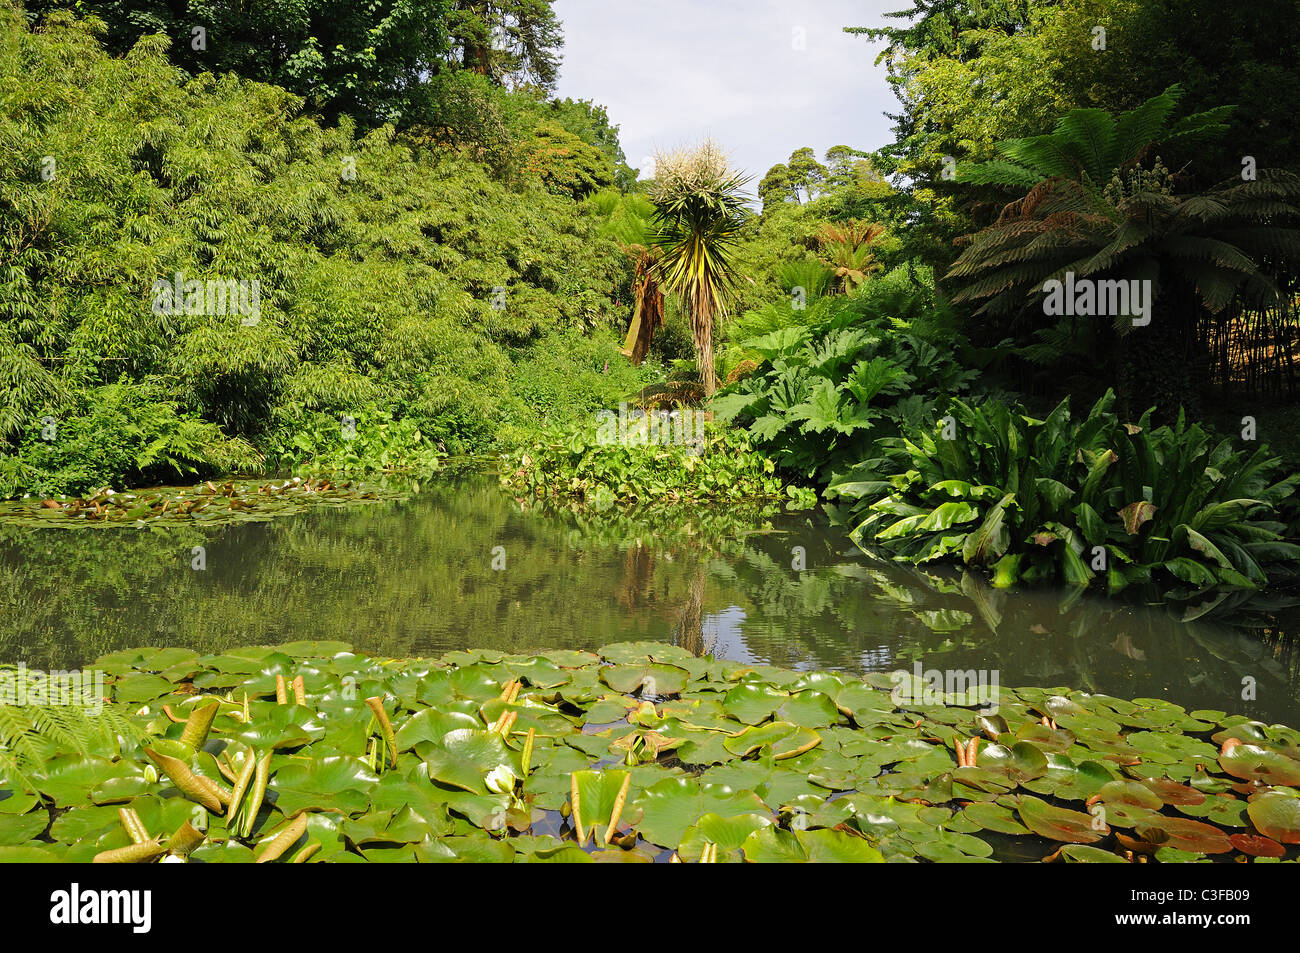 The jungle area at The Lost Gardens of Heligan in Cornwall, UK - Stock Image